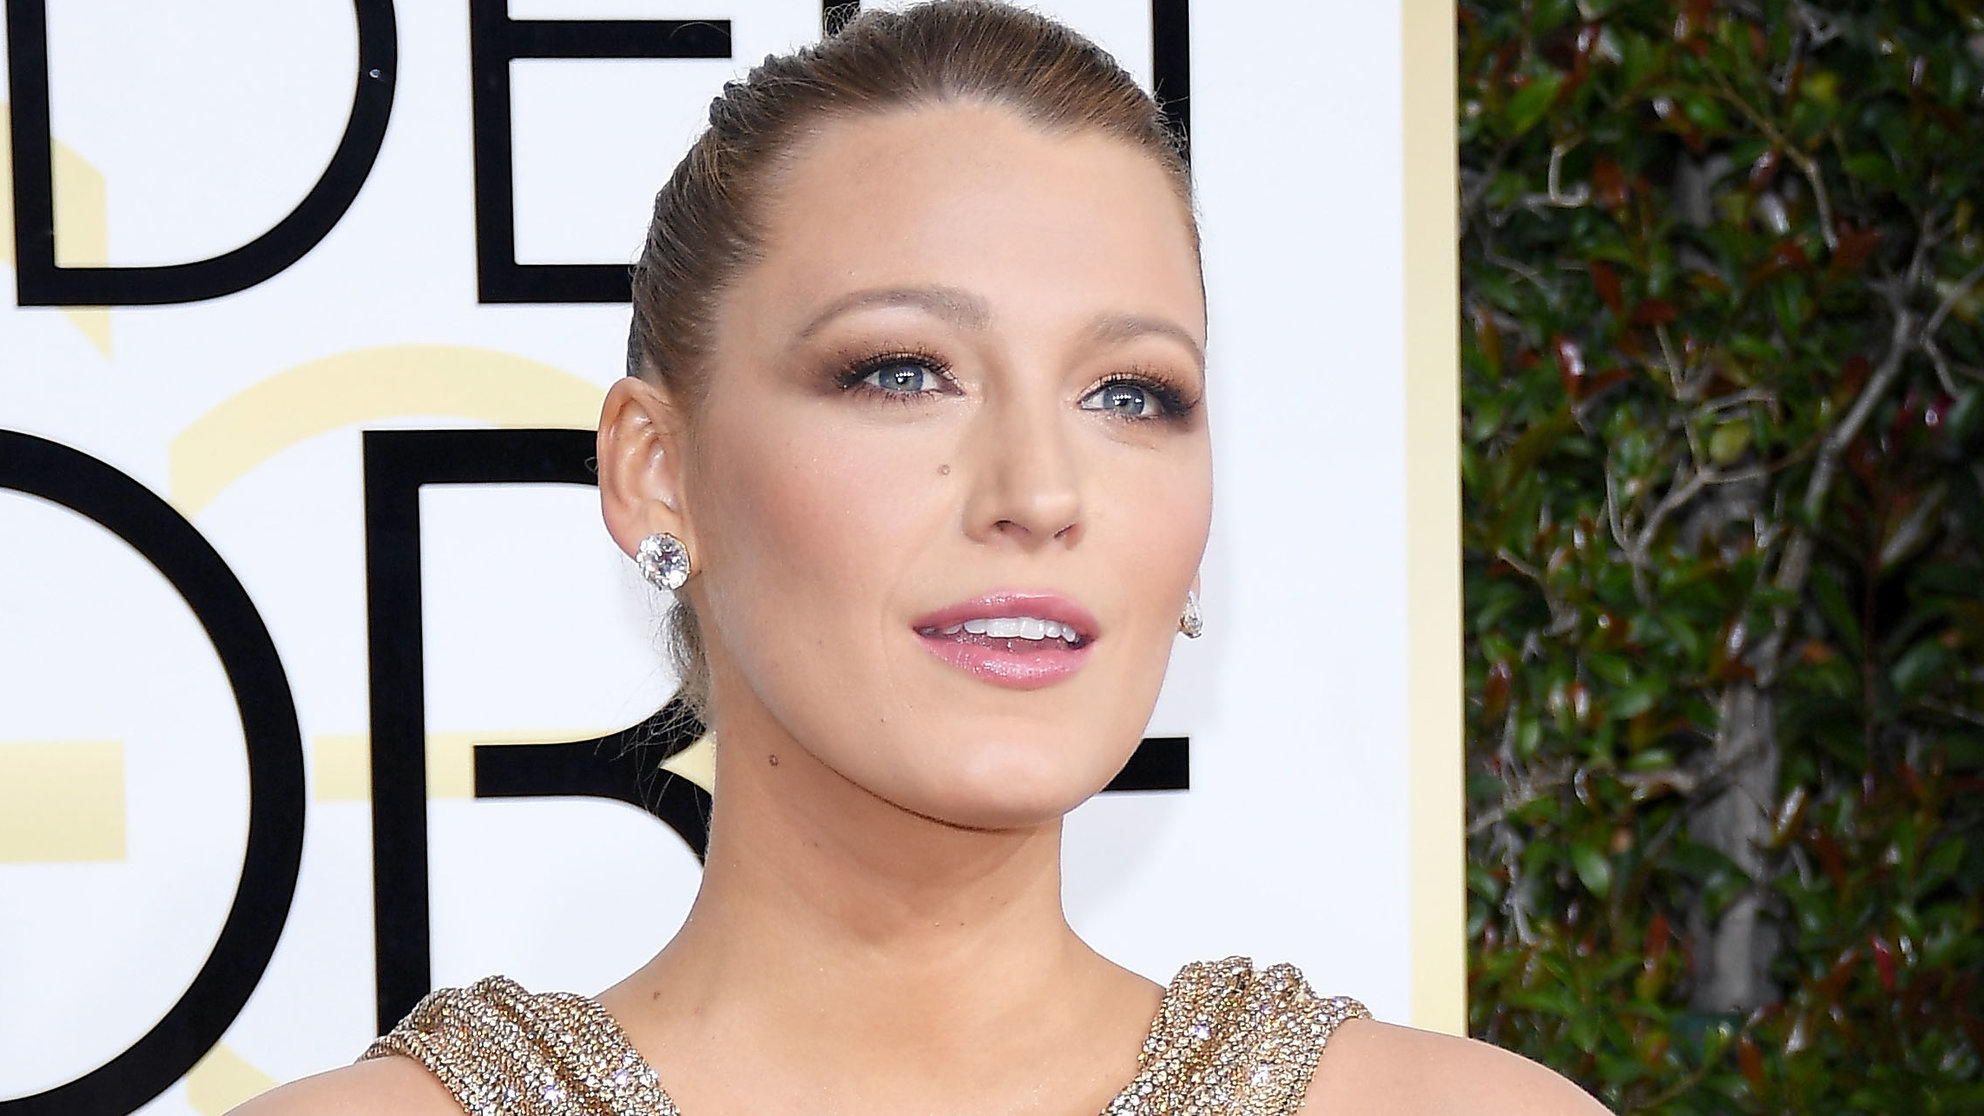 The Under-$10 Drugstore Lip Gloss You'll Find in Blake Lively's Clutch